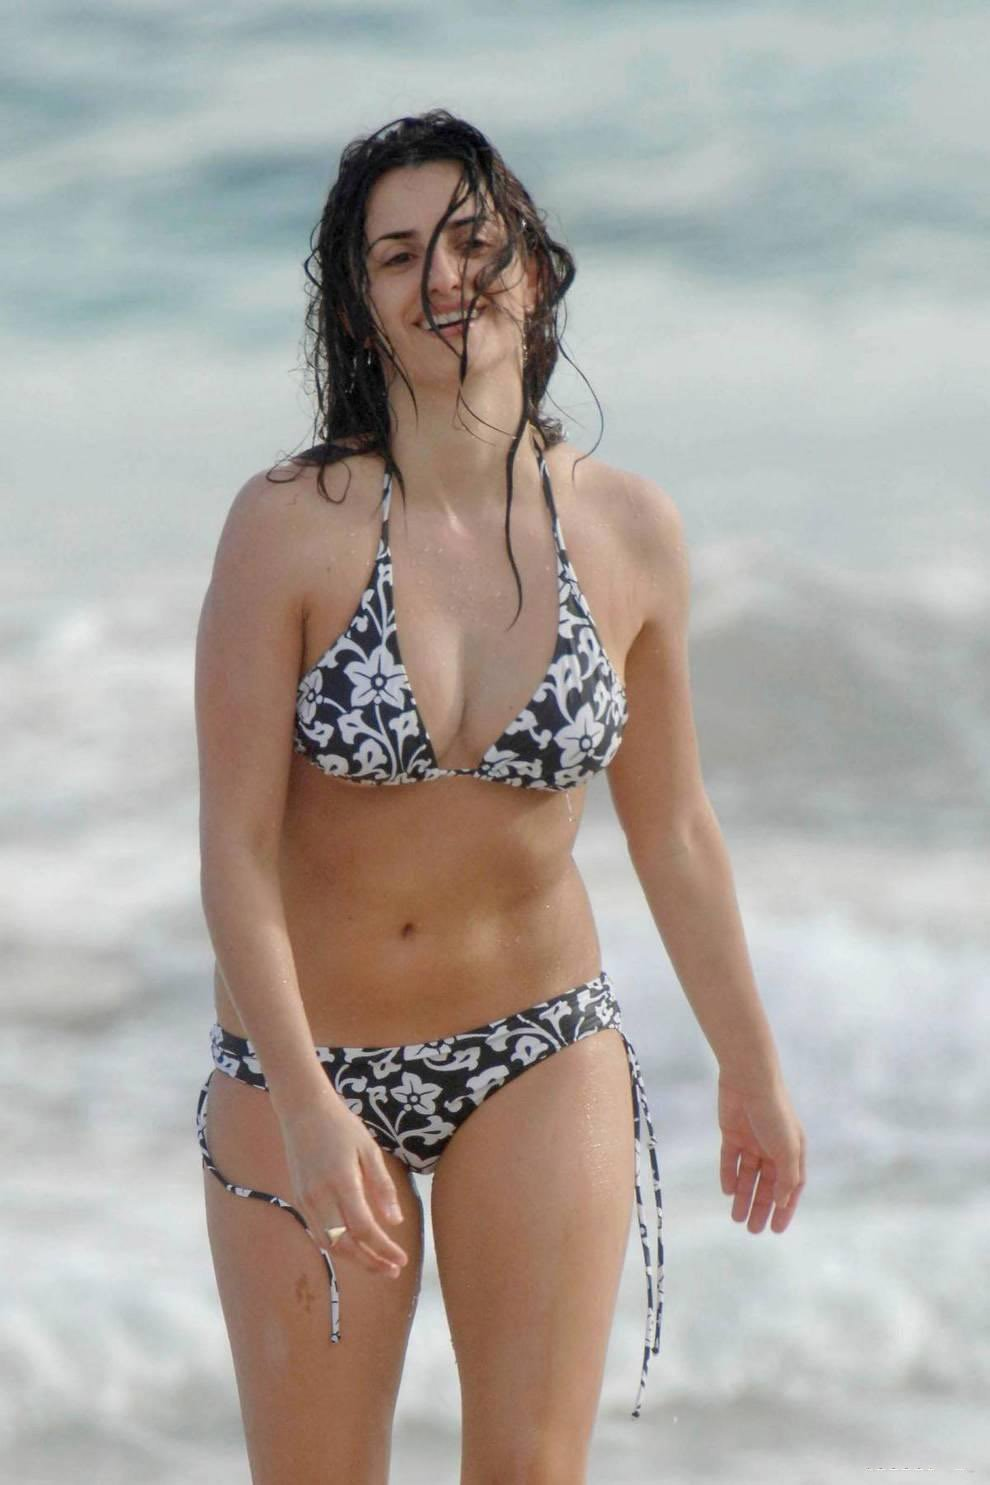 Real-life couple Penelope Cruz and Javier Bardem Penelope cruz bikini photos